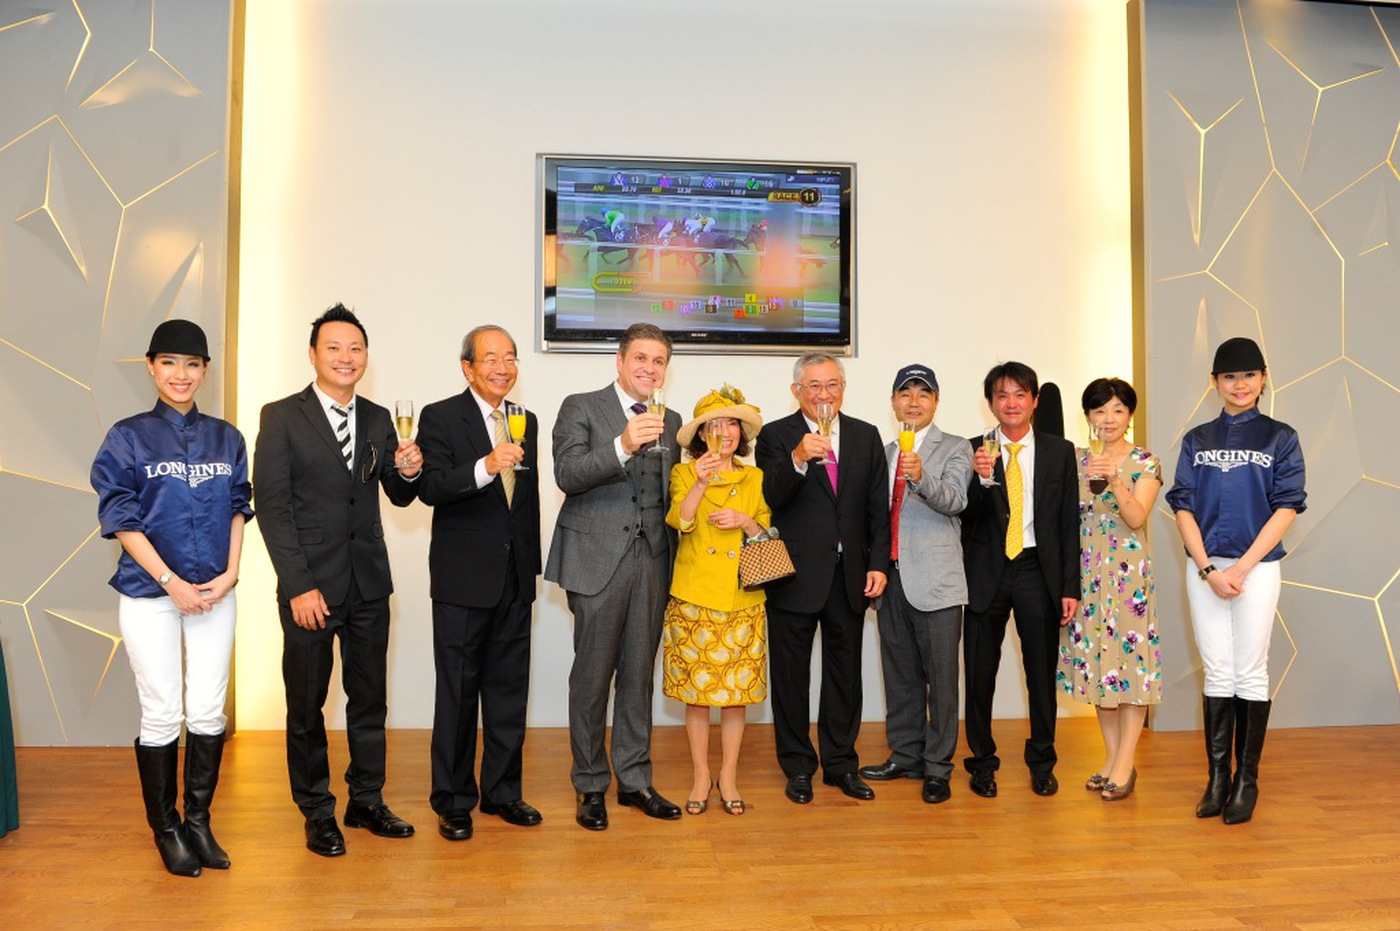 Longines Flat Racing Event: Longines Singapore Gold Cup 2012 raises S$236,728 17